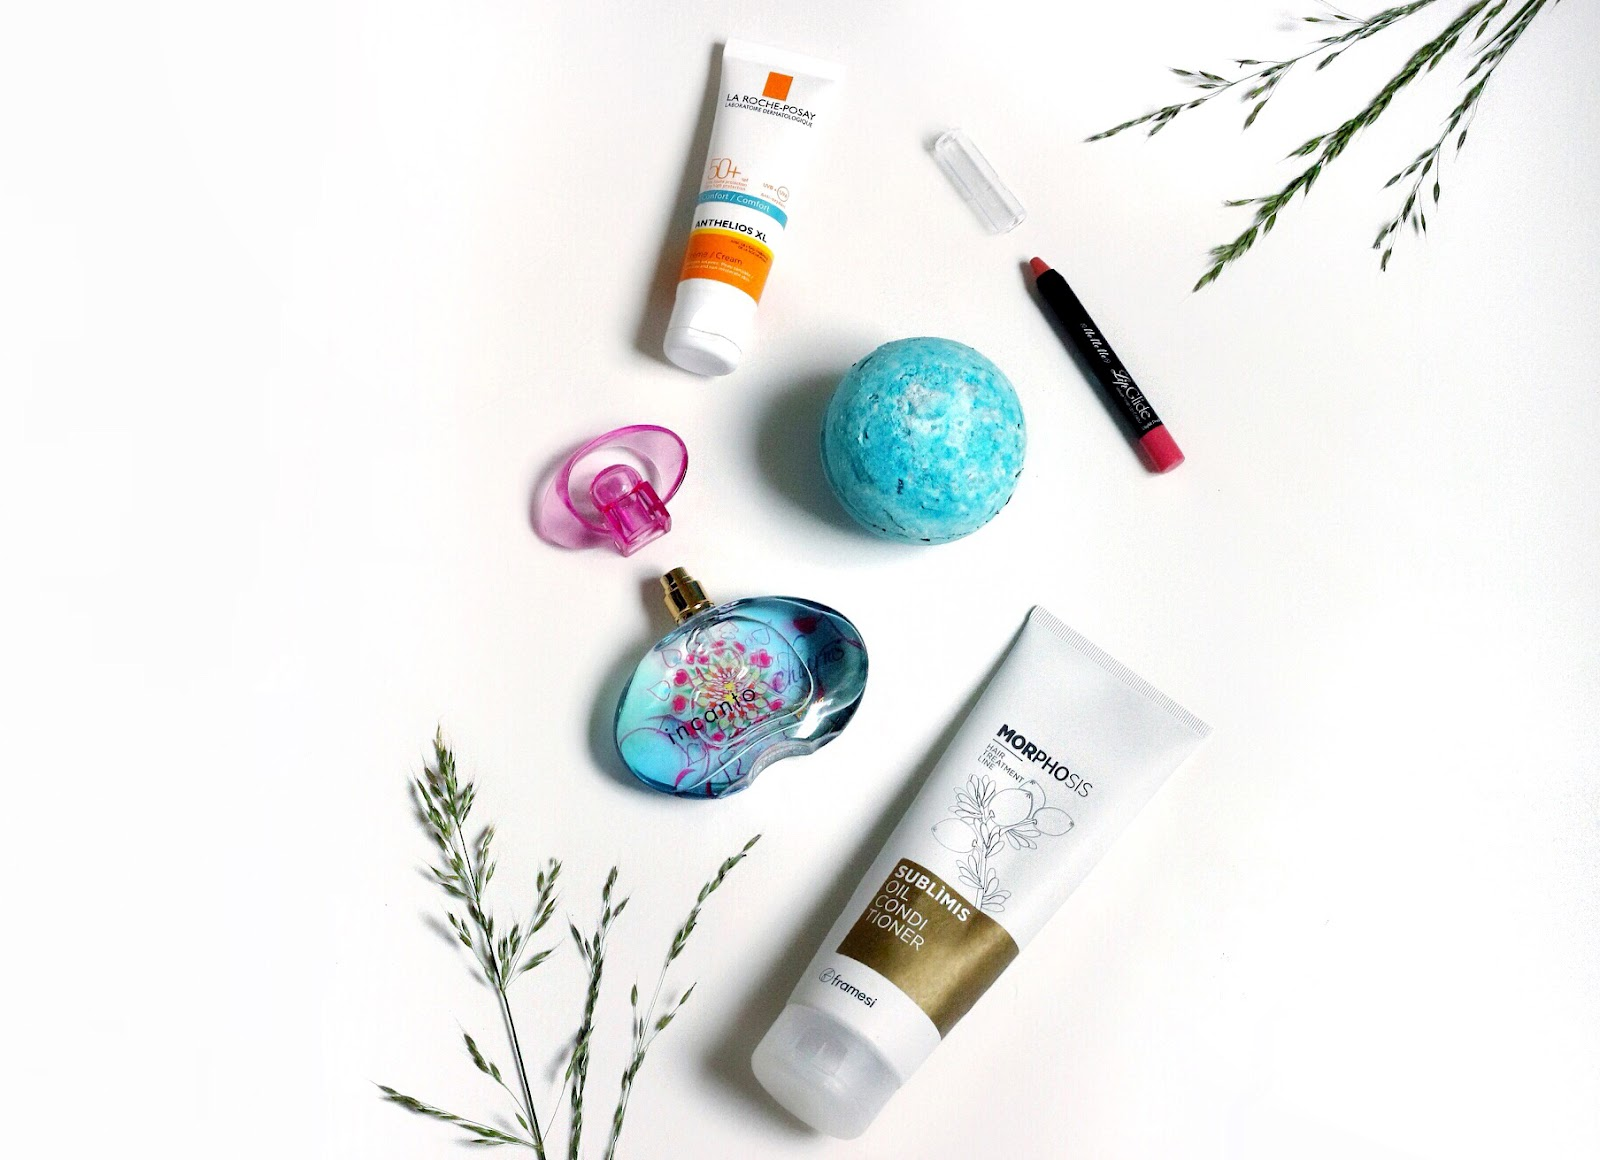 makeup favourites, beauty favourites, lifestyle favourites, parabens free conditioner, perfume, salvatore ferragamo, lush, lush bath bombs, mememe, mememe cosmetics, la roche posay, sunscreen, spf 50 sunscreen, anasofiachic, makeup blogger, fashion blogger, lifestyle blogger, british blogger